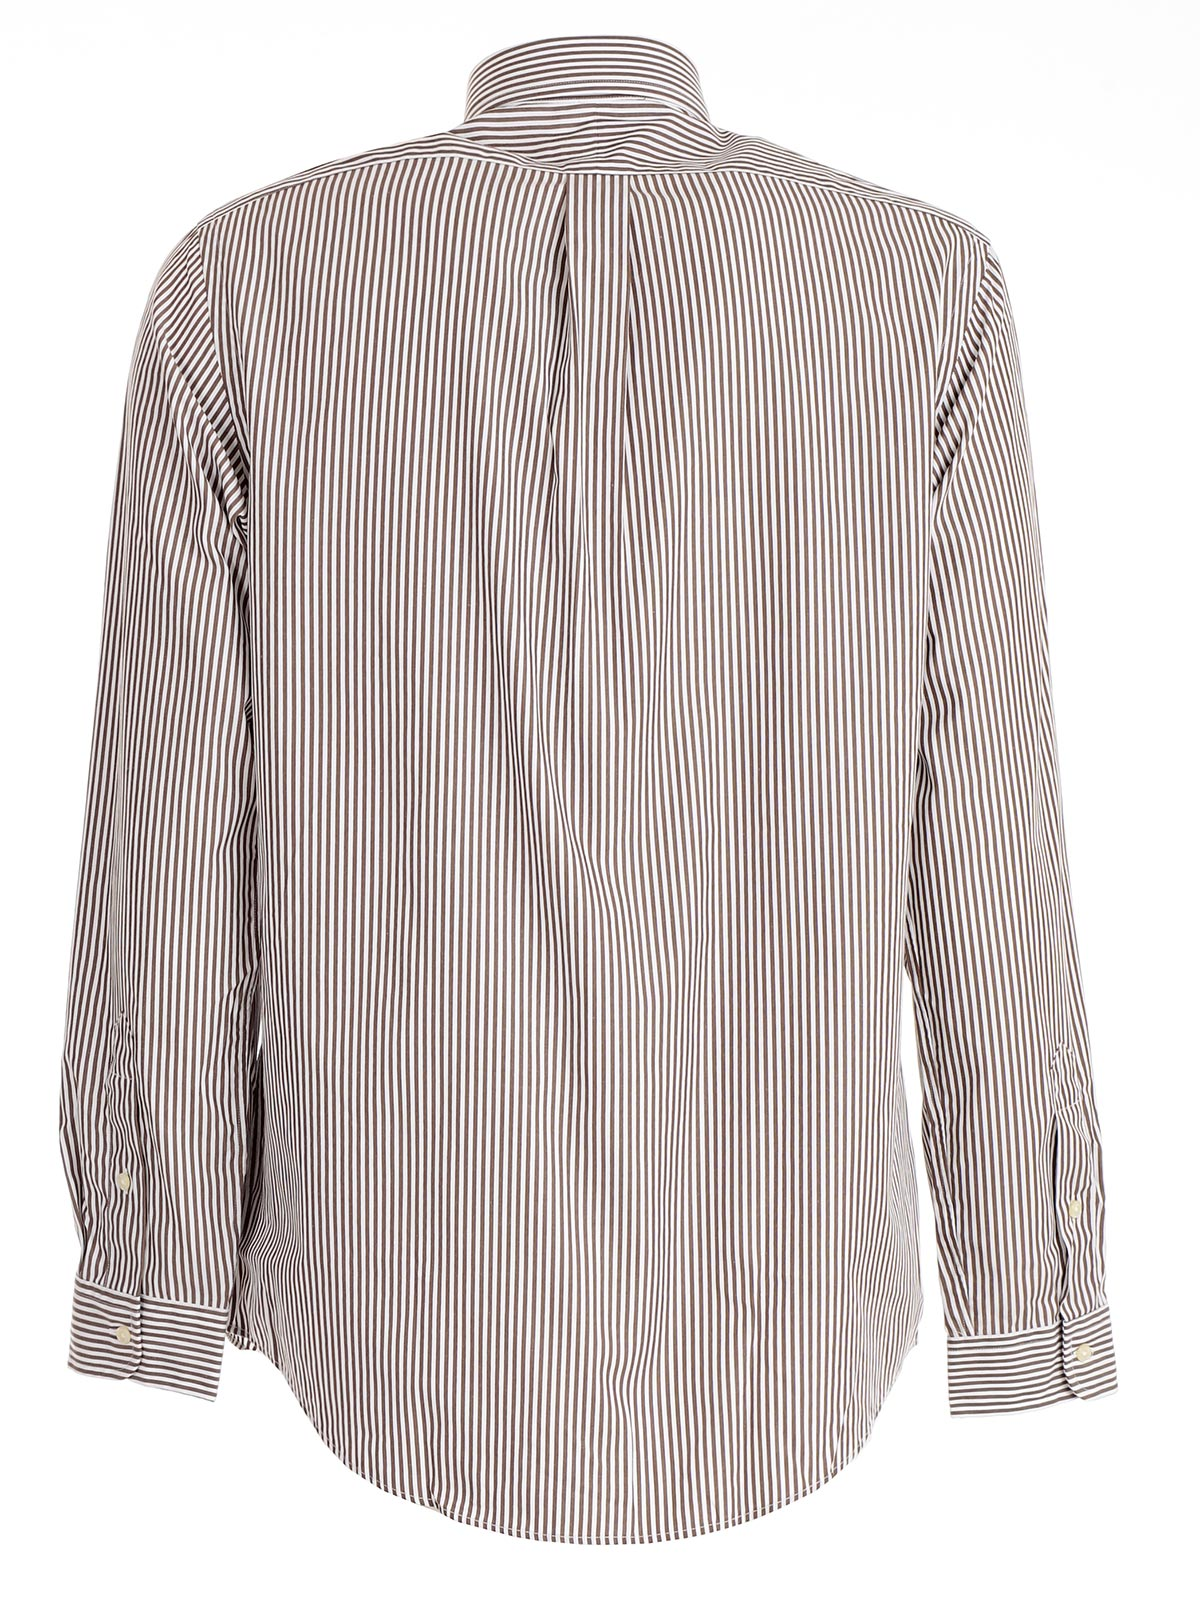 Picture of Polo Ralph Lauren Striped